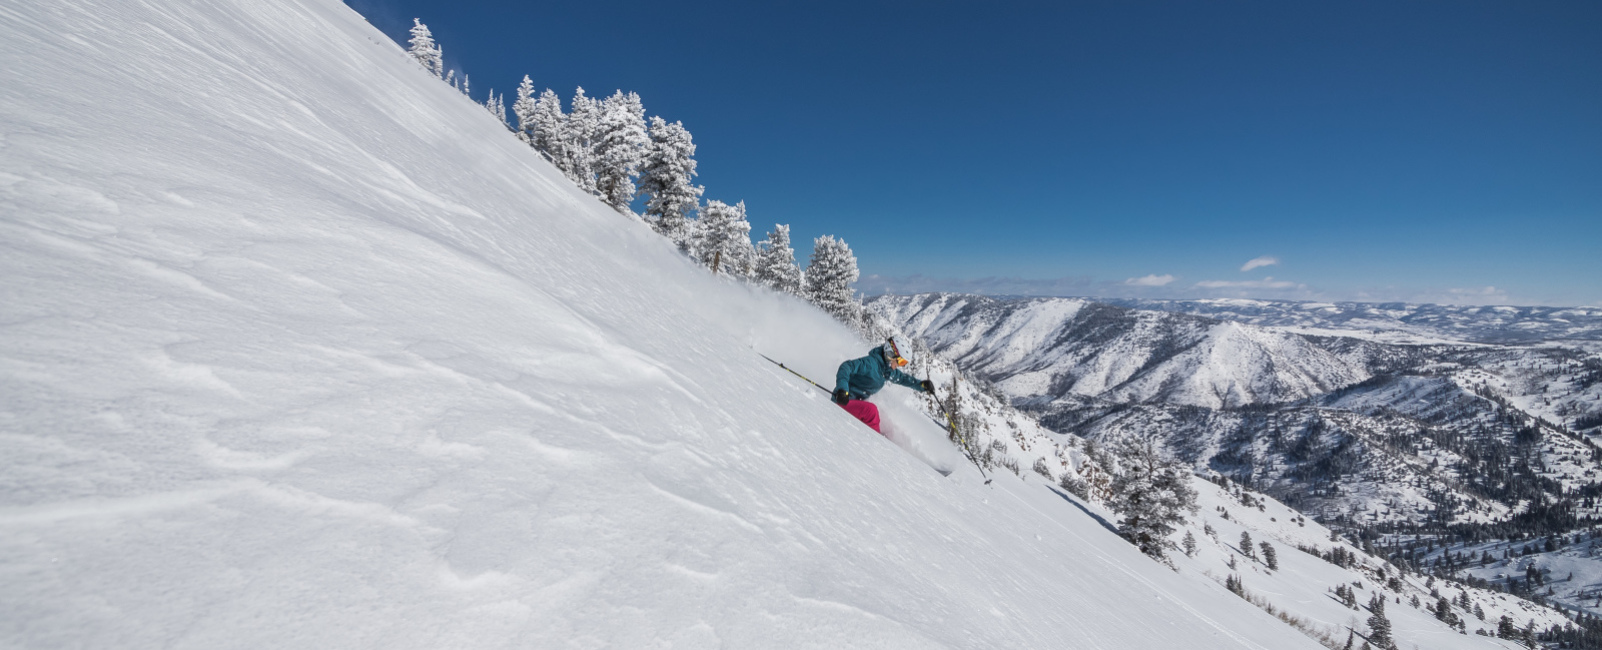 Socially Distant Skiing? Powder Mountain's Had That For Years.